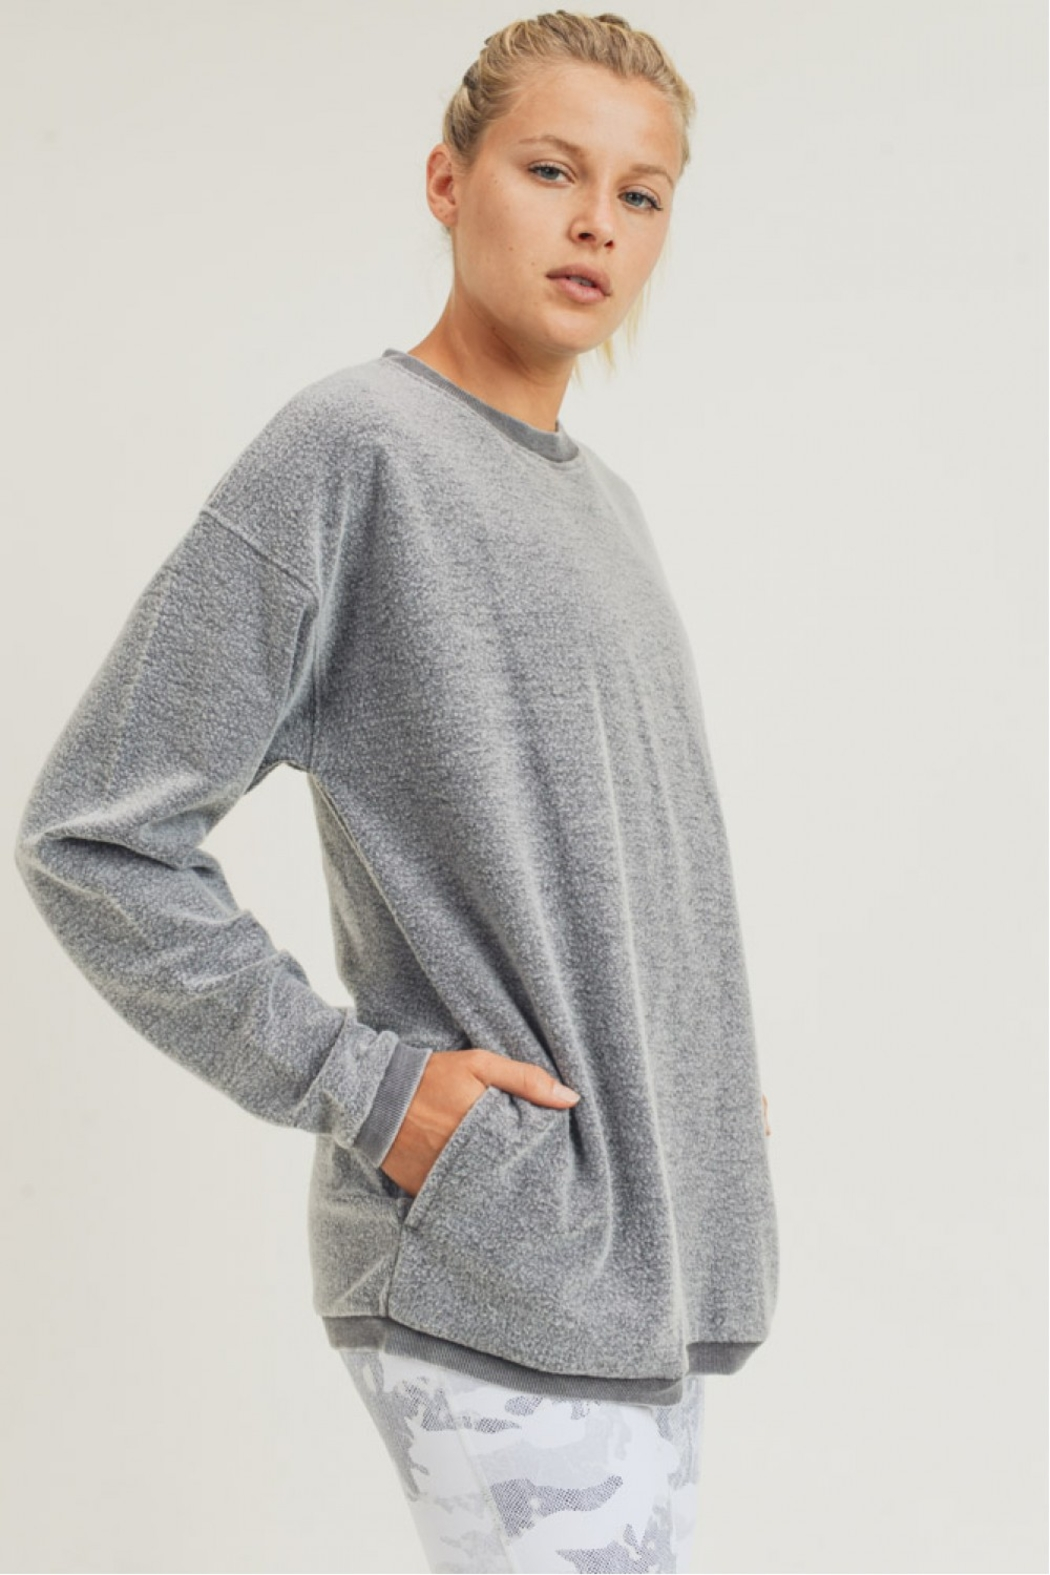 Mono B Fuzzy Mineral Washed Pullover w Pockets - Main Image